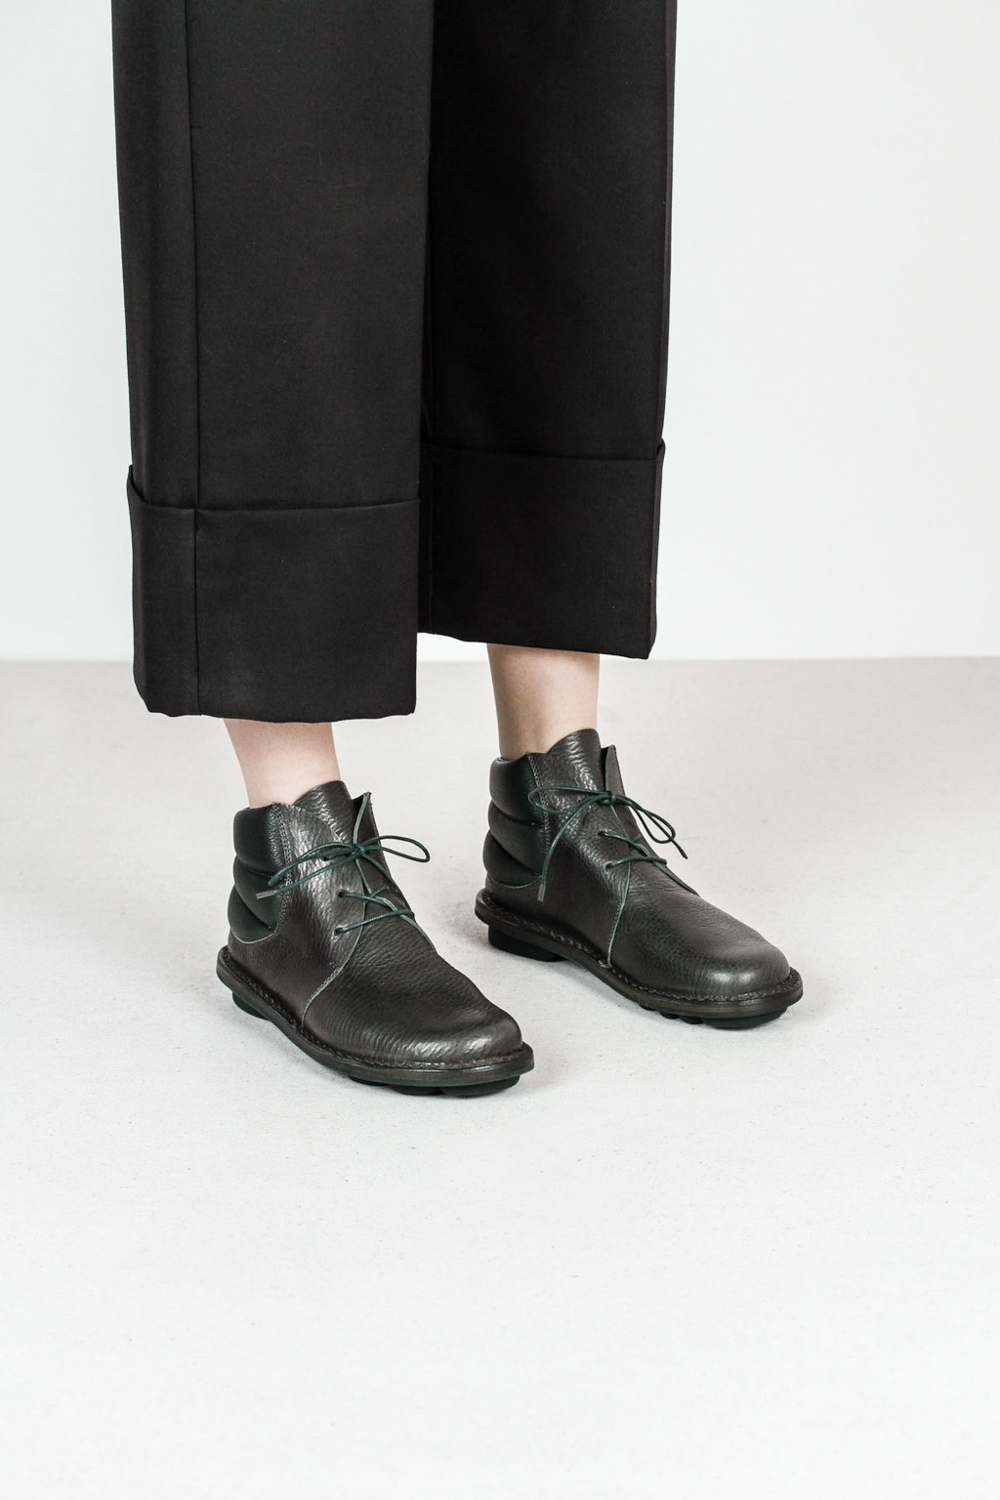 Trippen idler f waw forest leather boots